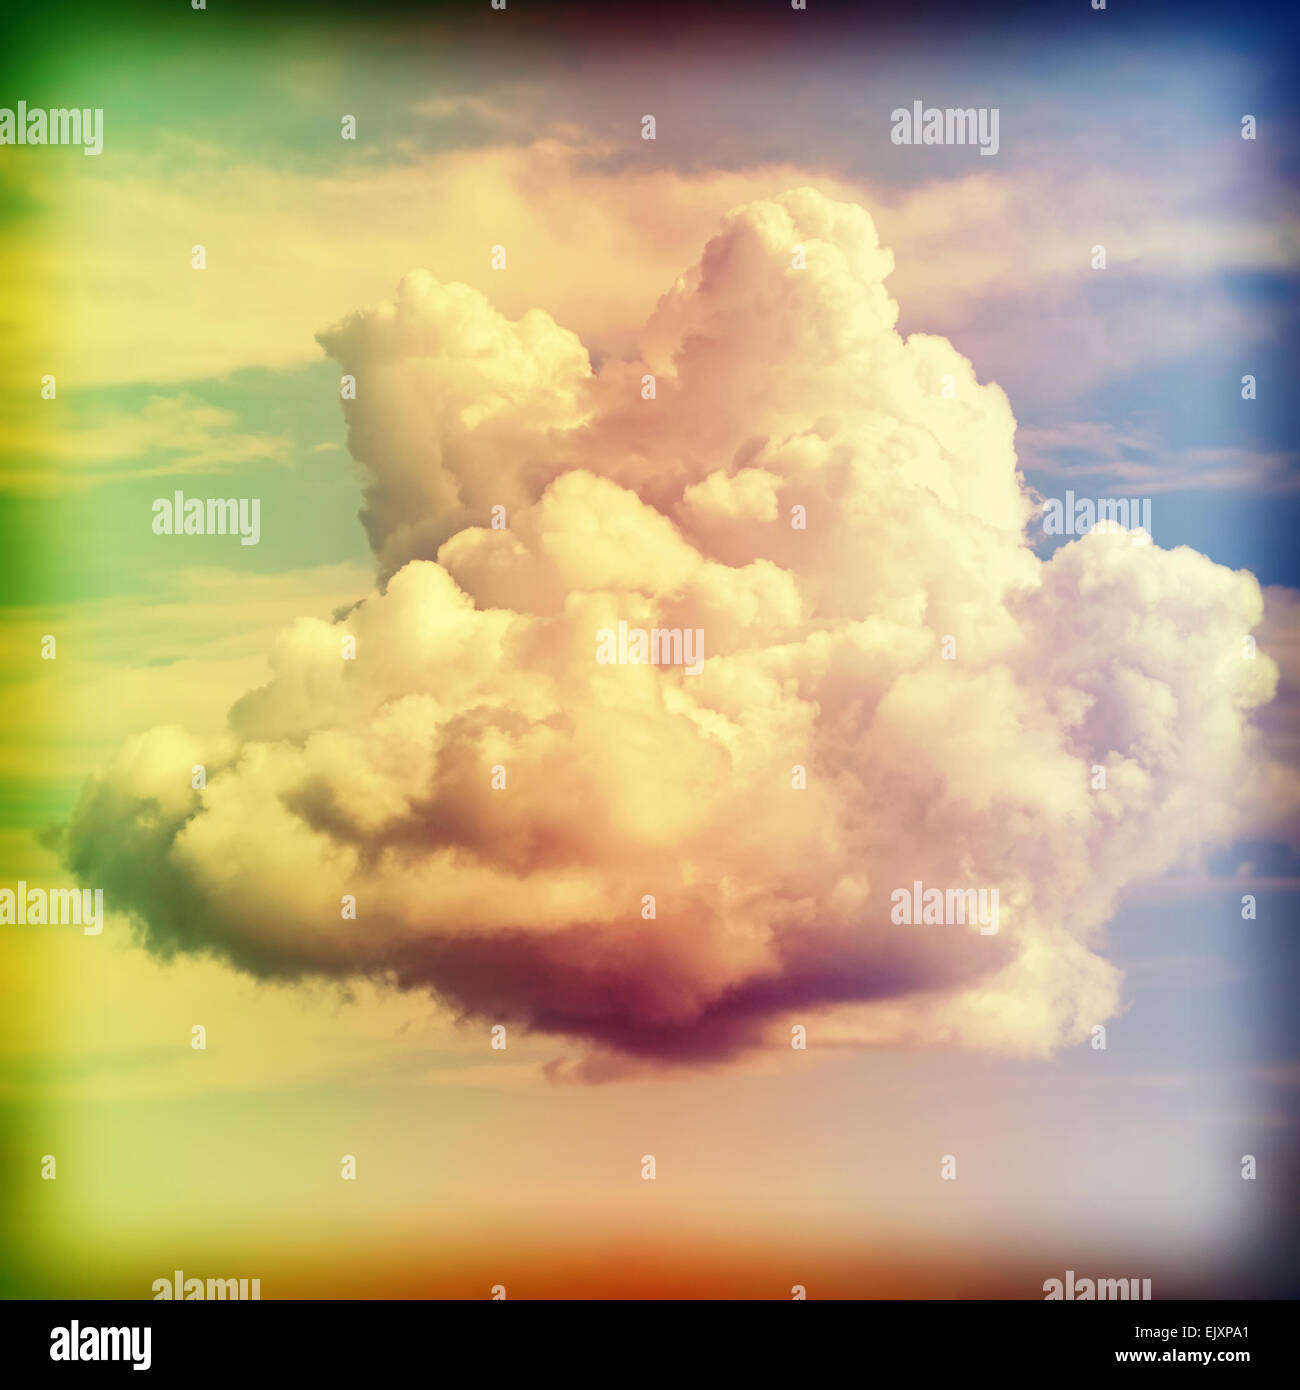 Cross processed old film style picture of a cloud. - Stock Image